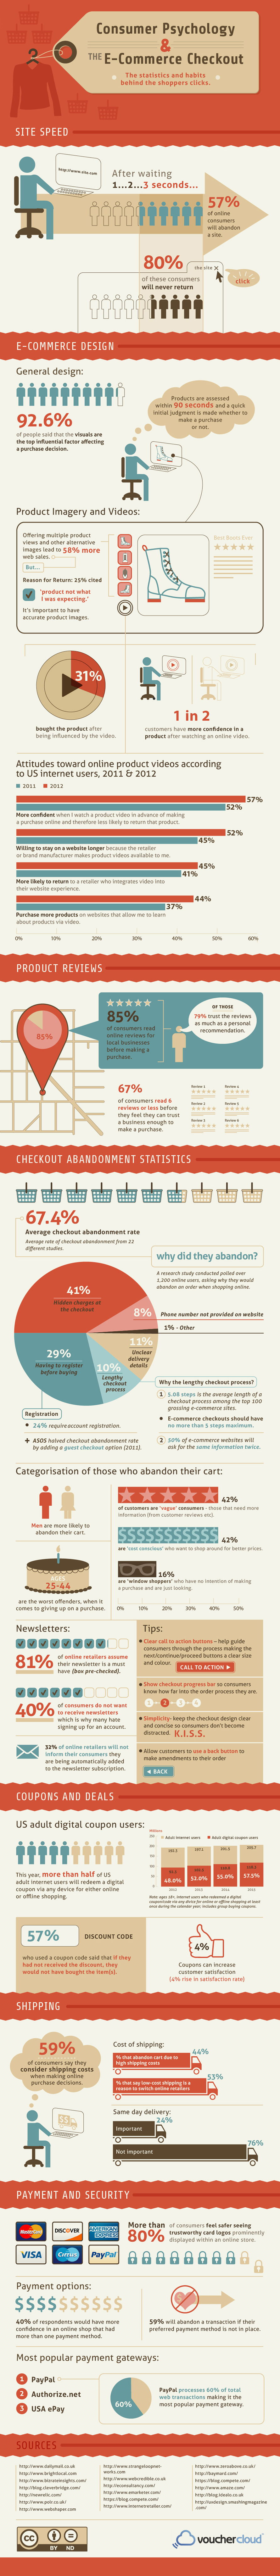 Ecommerce Checkout and Consumer Psychology Infographic